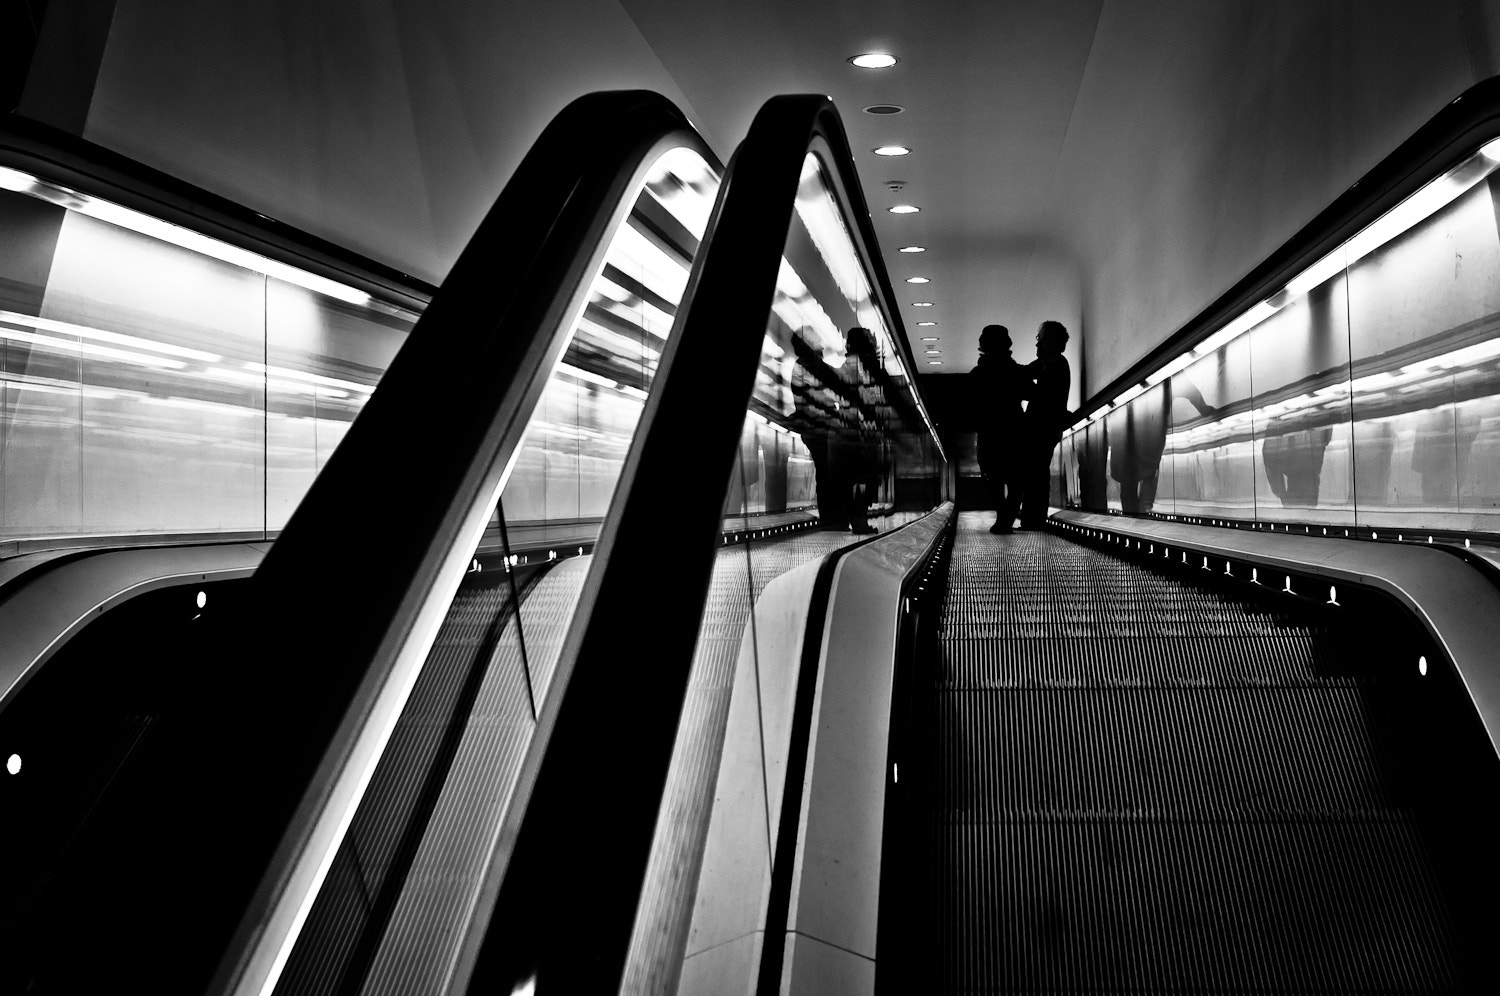 Photograph Escalators by Edwin Loekemeijer on 500px